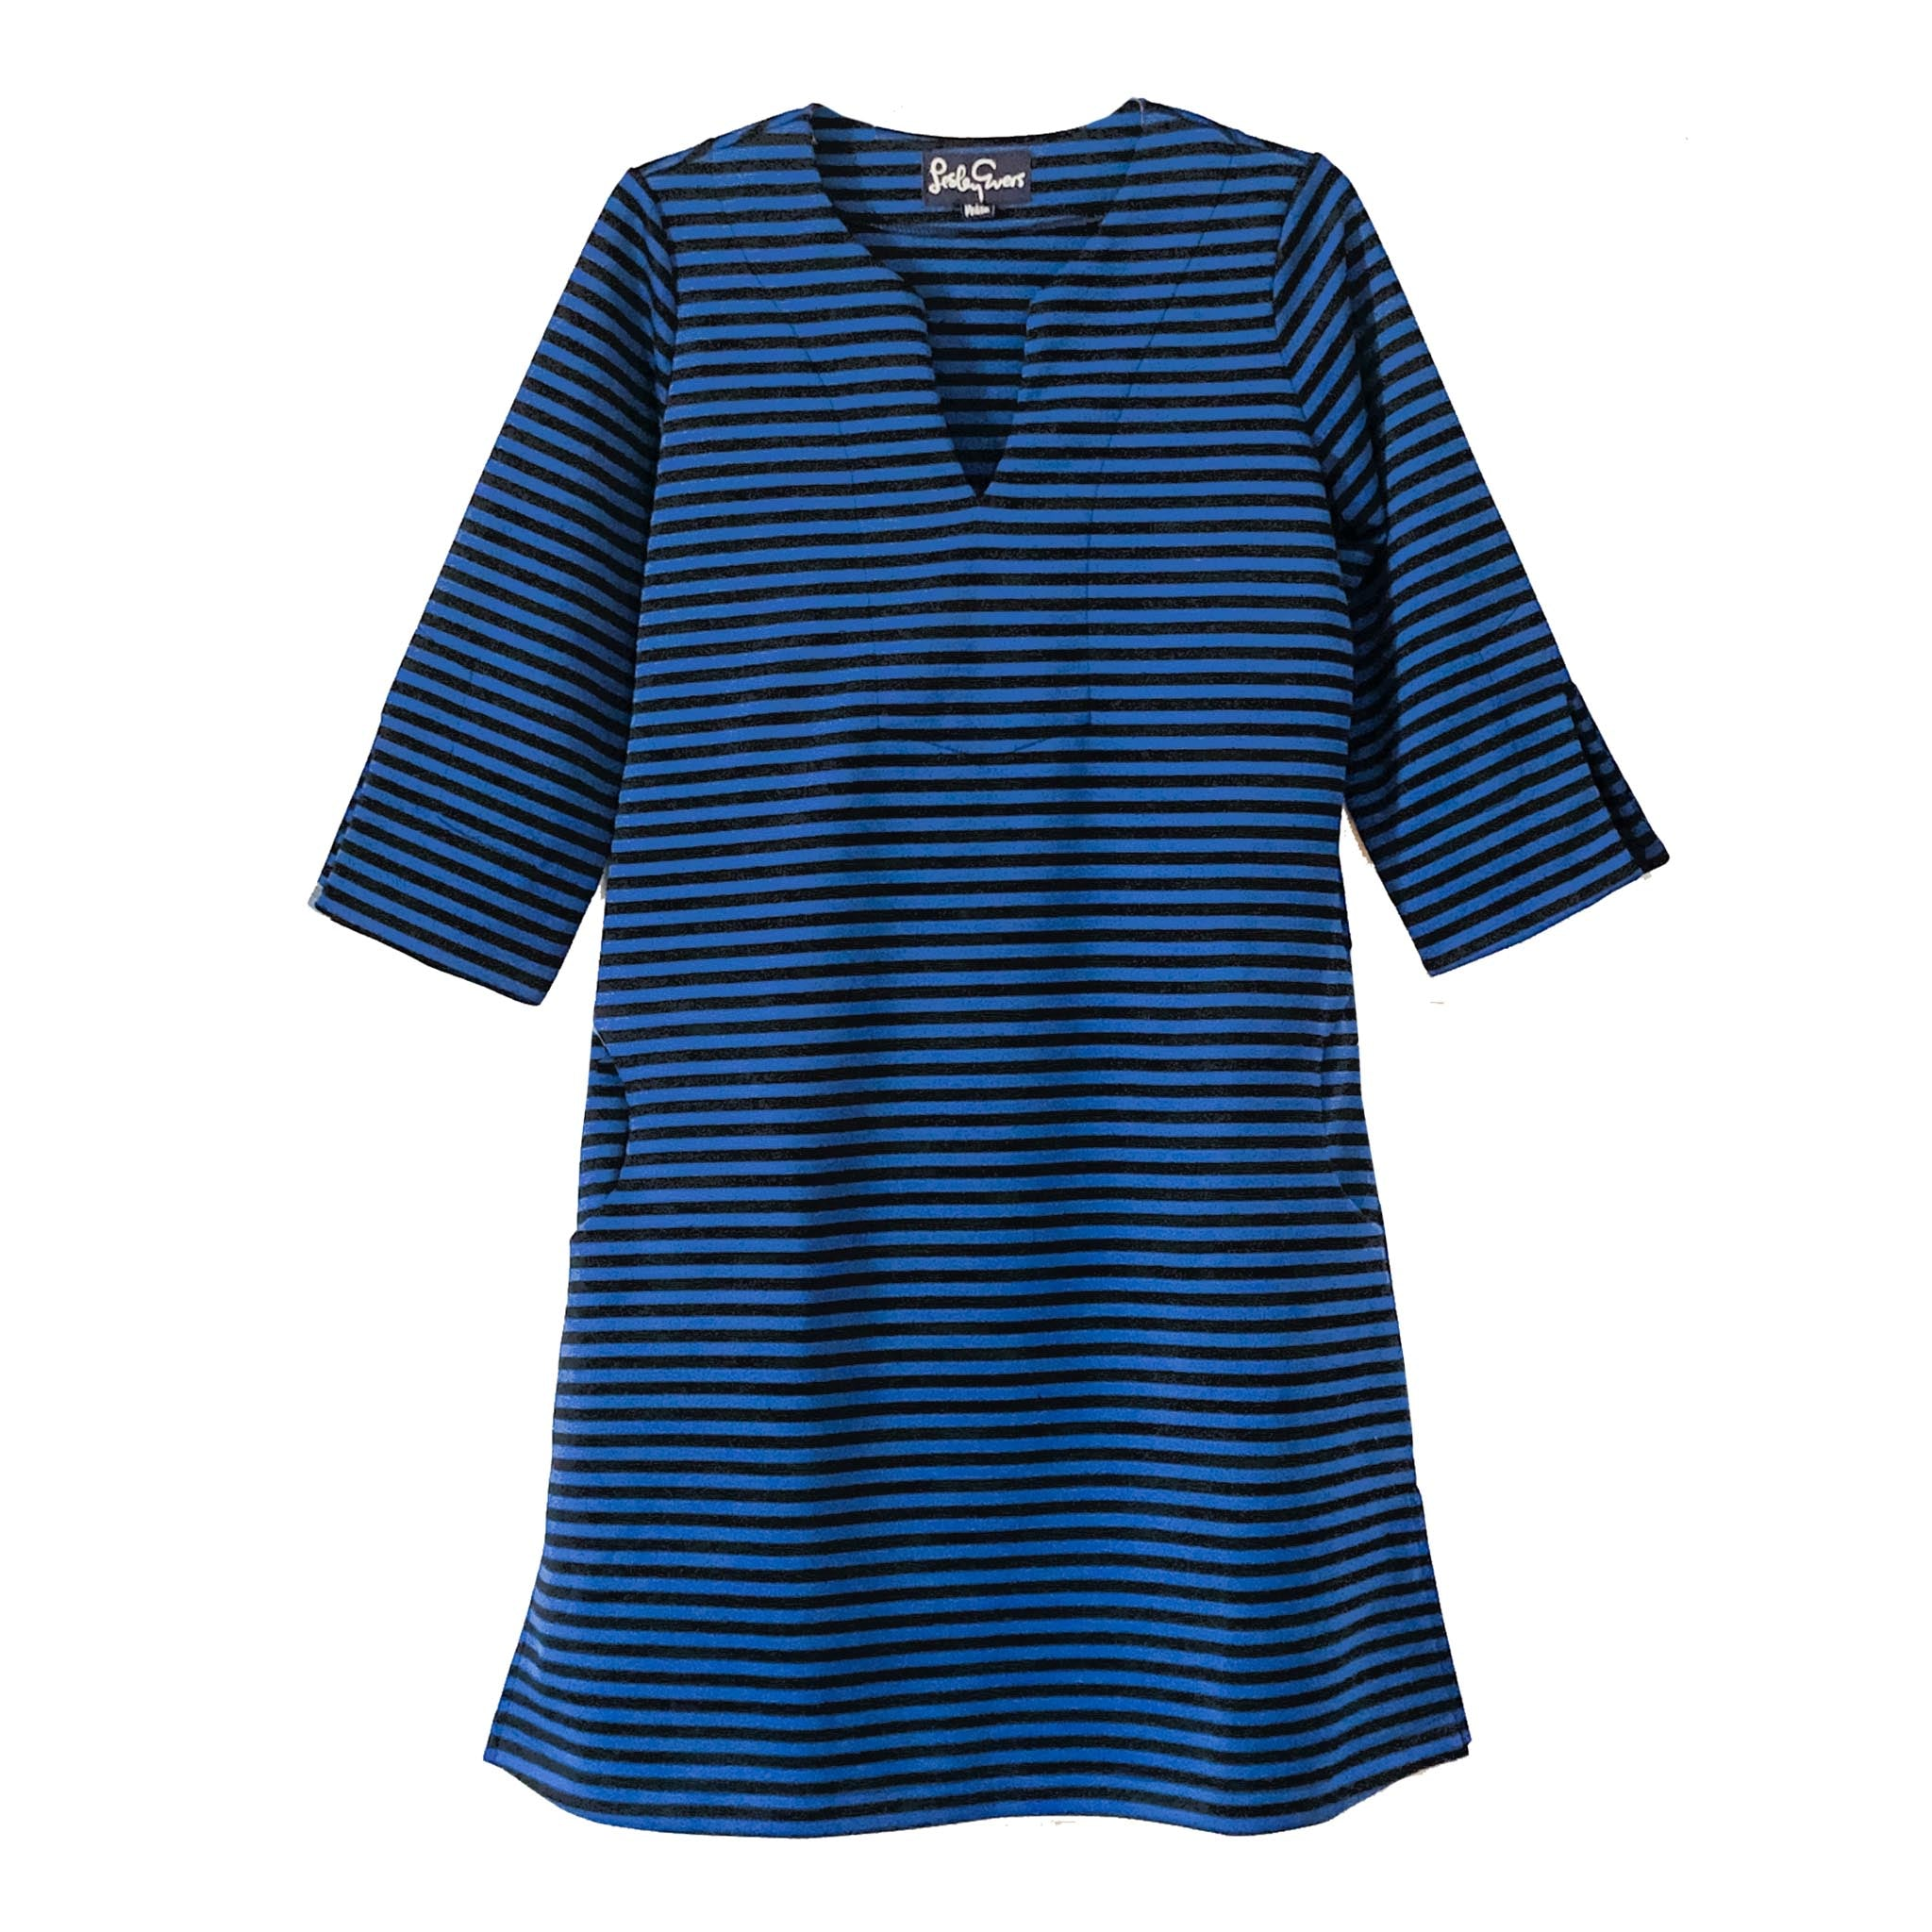 MAEVE Royal/Black Stripe